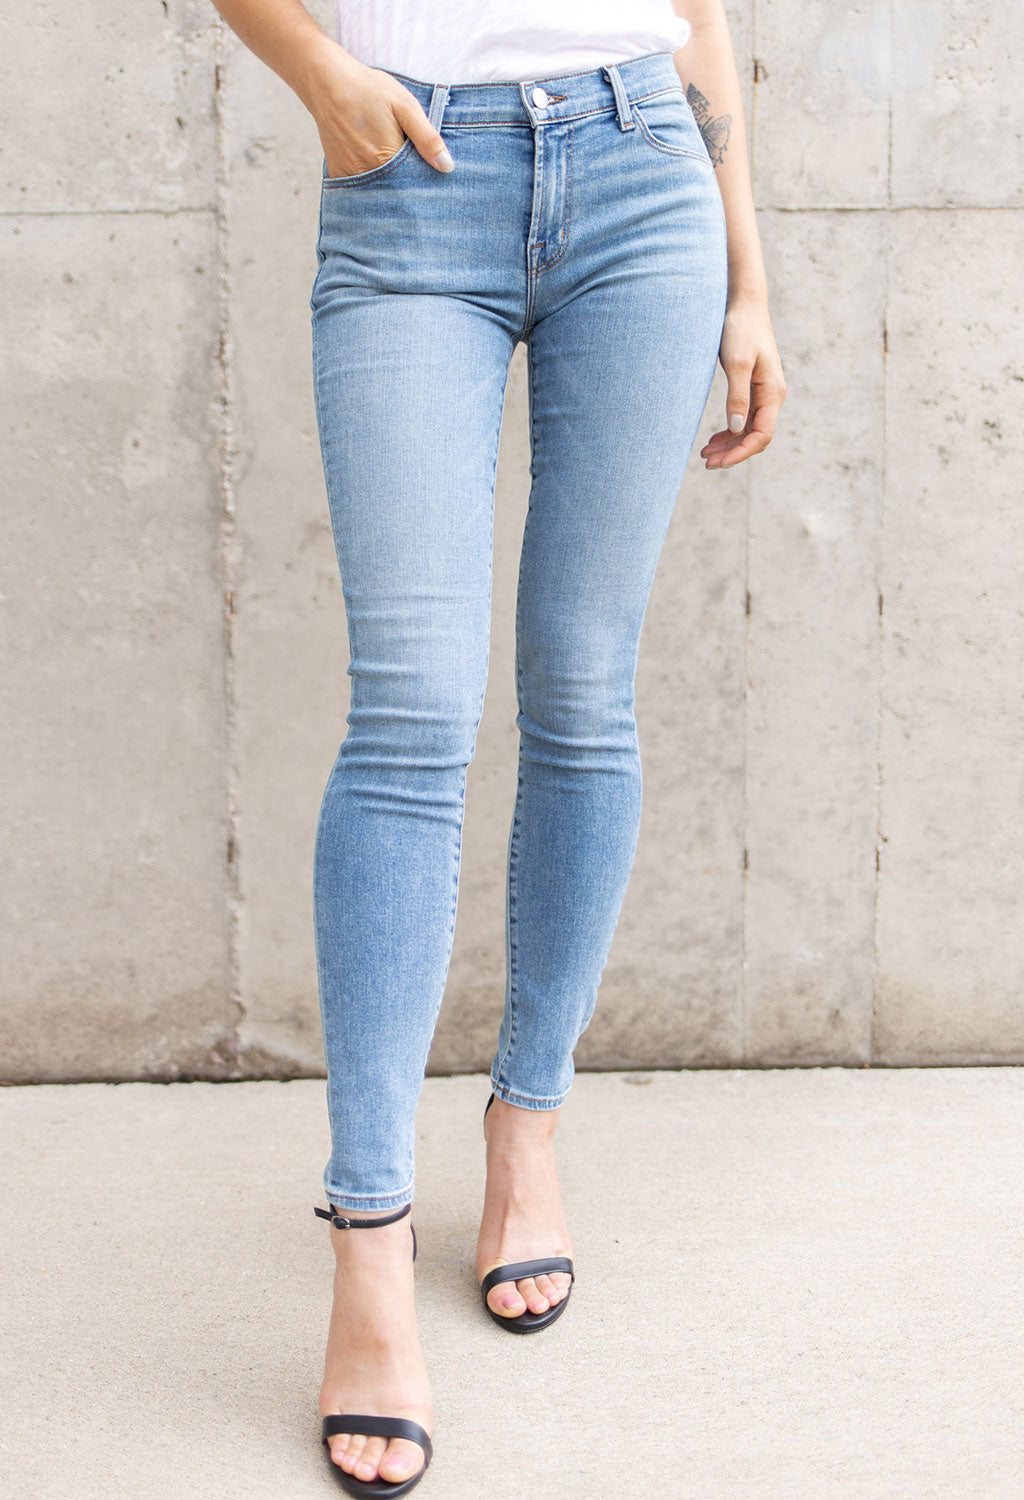 J Brand 620 Mid Rise Super Skinny - RUST & Co.